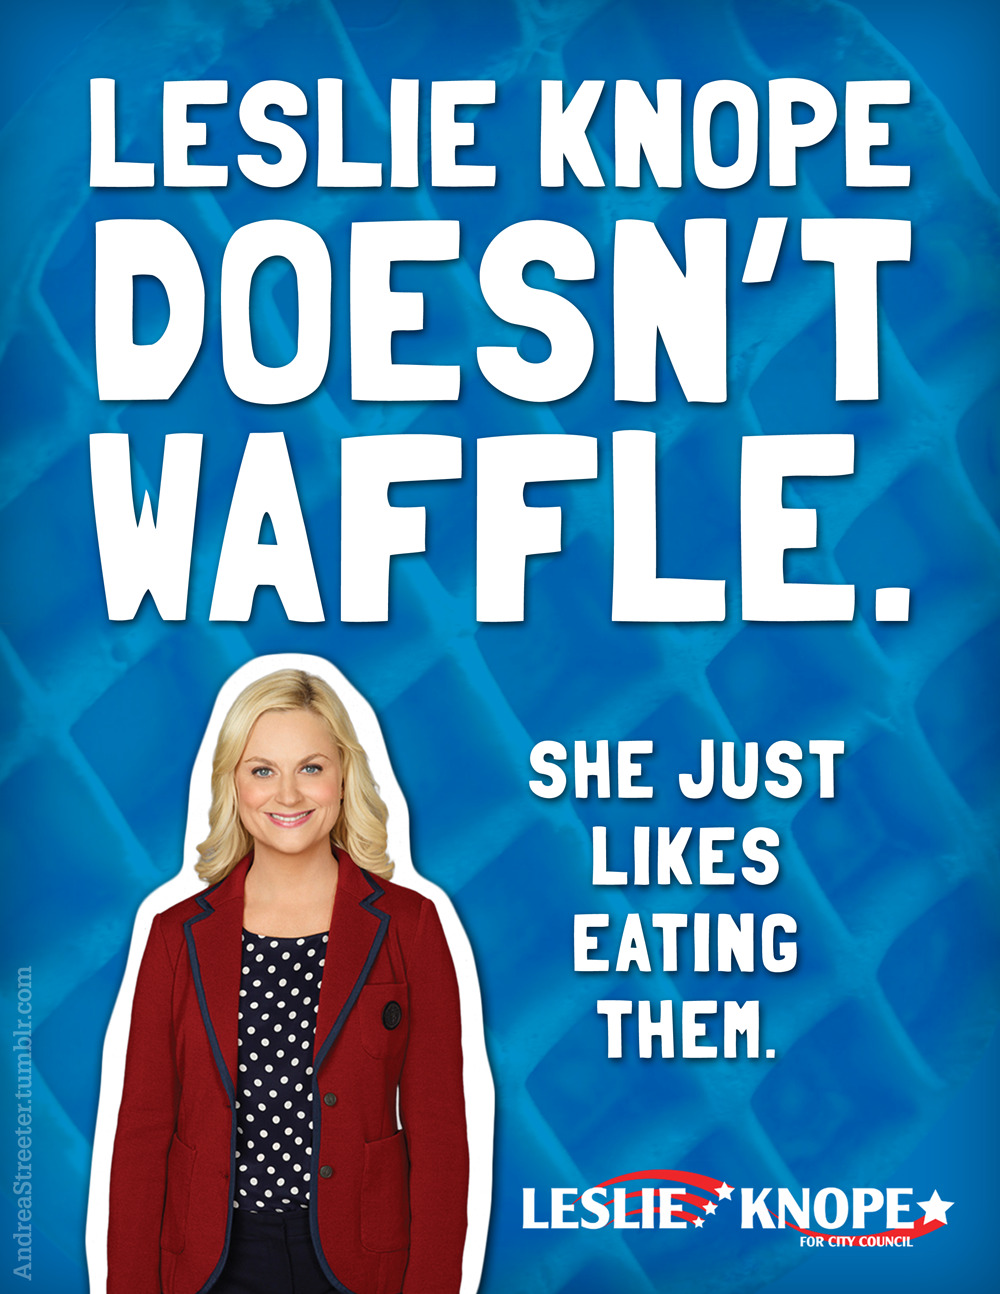 I said I was going to make a Knope 2012 poster, and I meant it. Waffle lovers, unite! [MAKE YOUR OWN] [SEE ALL 3 OF MINE HERE] I'd like to thank my messed-up sleep schedule: I couldn't have done this without you waking me up at 6am on a Sunday.